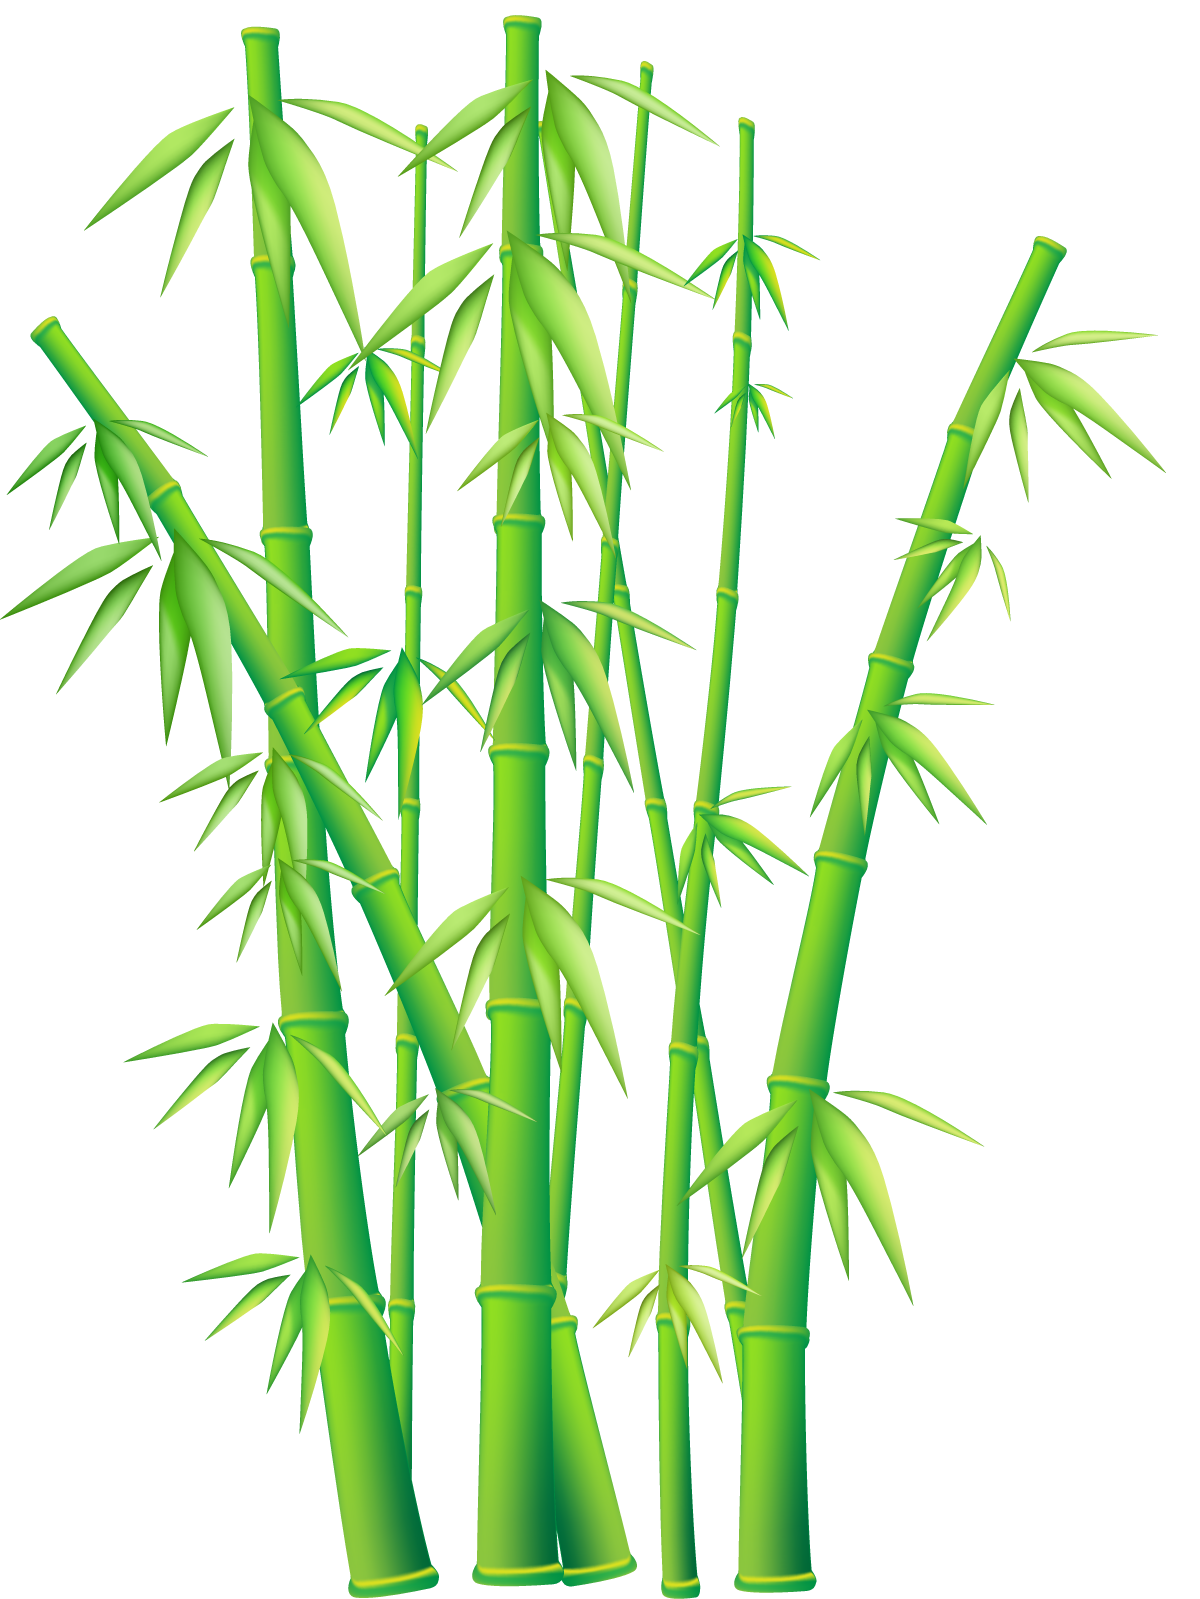 Bamboo png. Transparent images all file